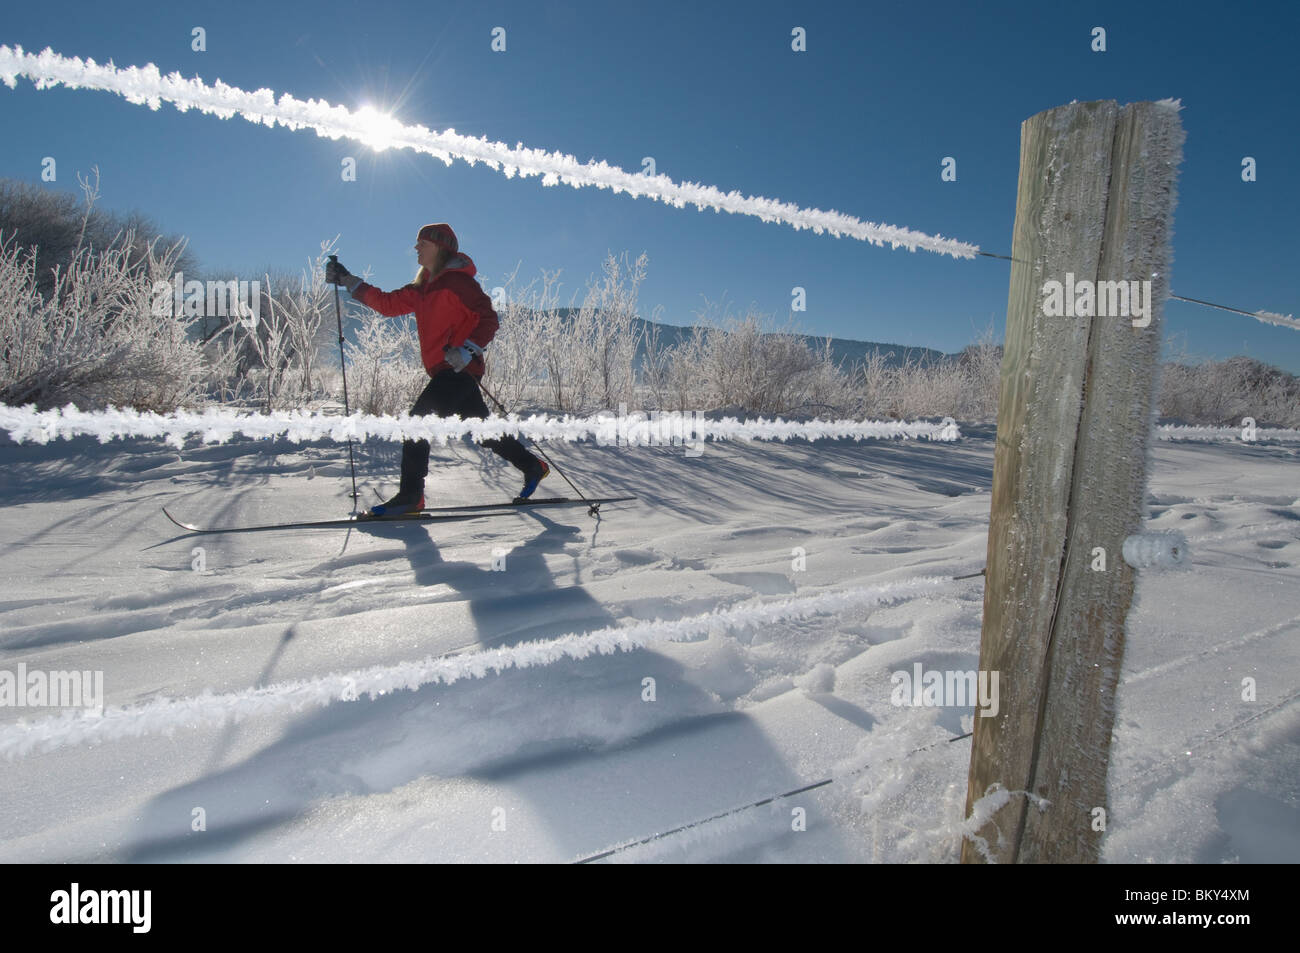 A woman cross country skiing next to frost covered fence in the Animas River Valley, Durango, Colorado. Stock Photo